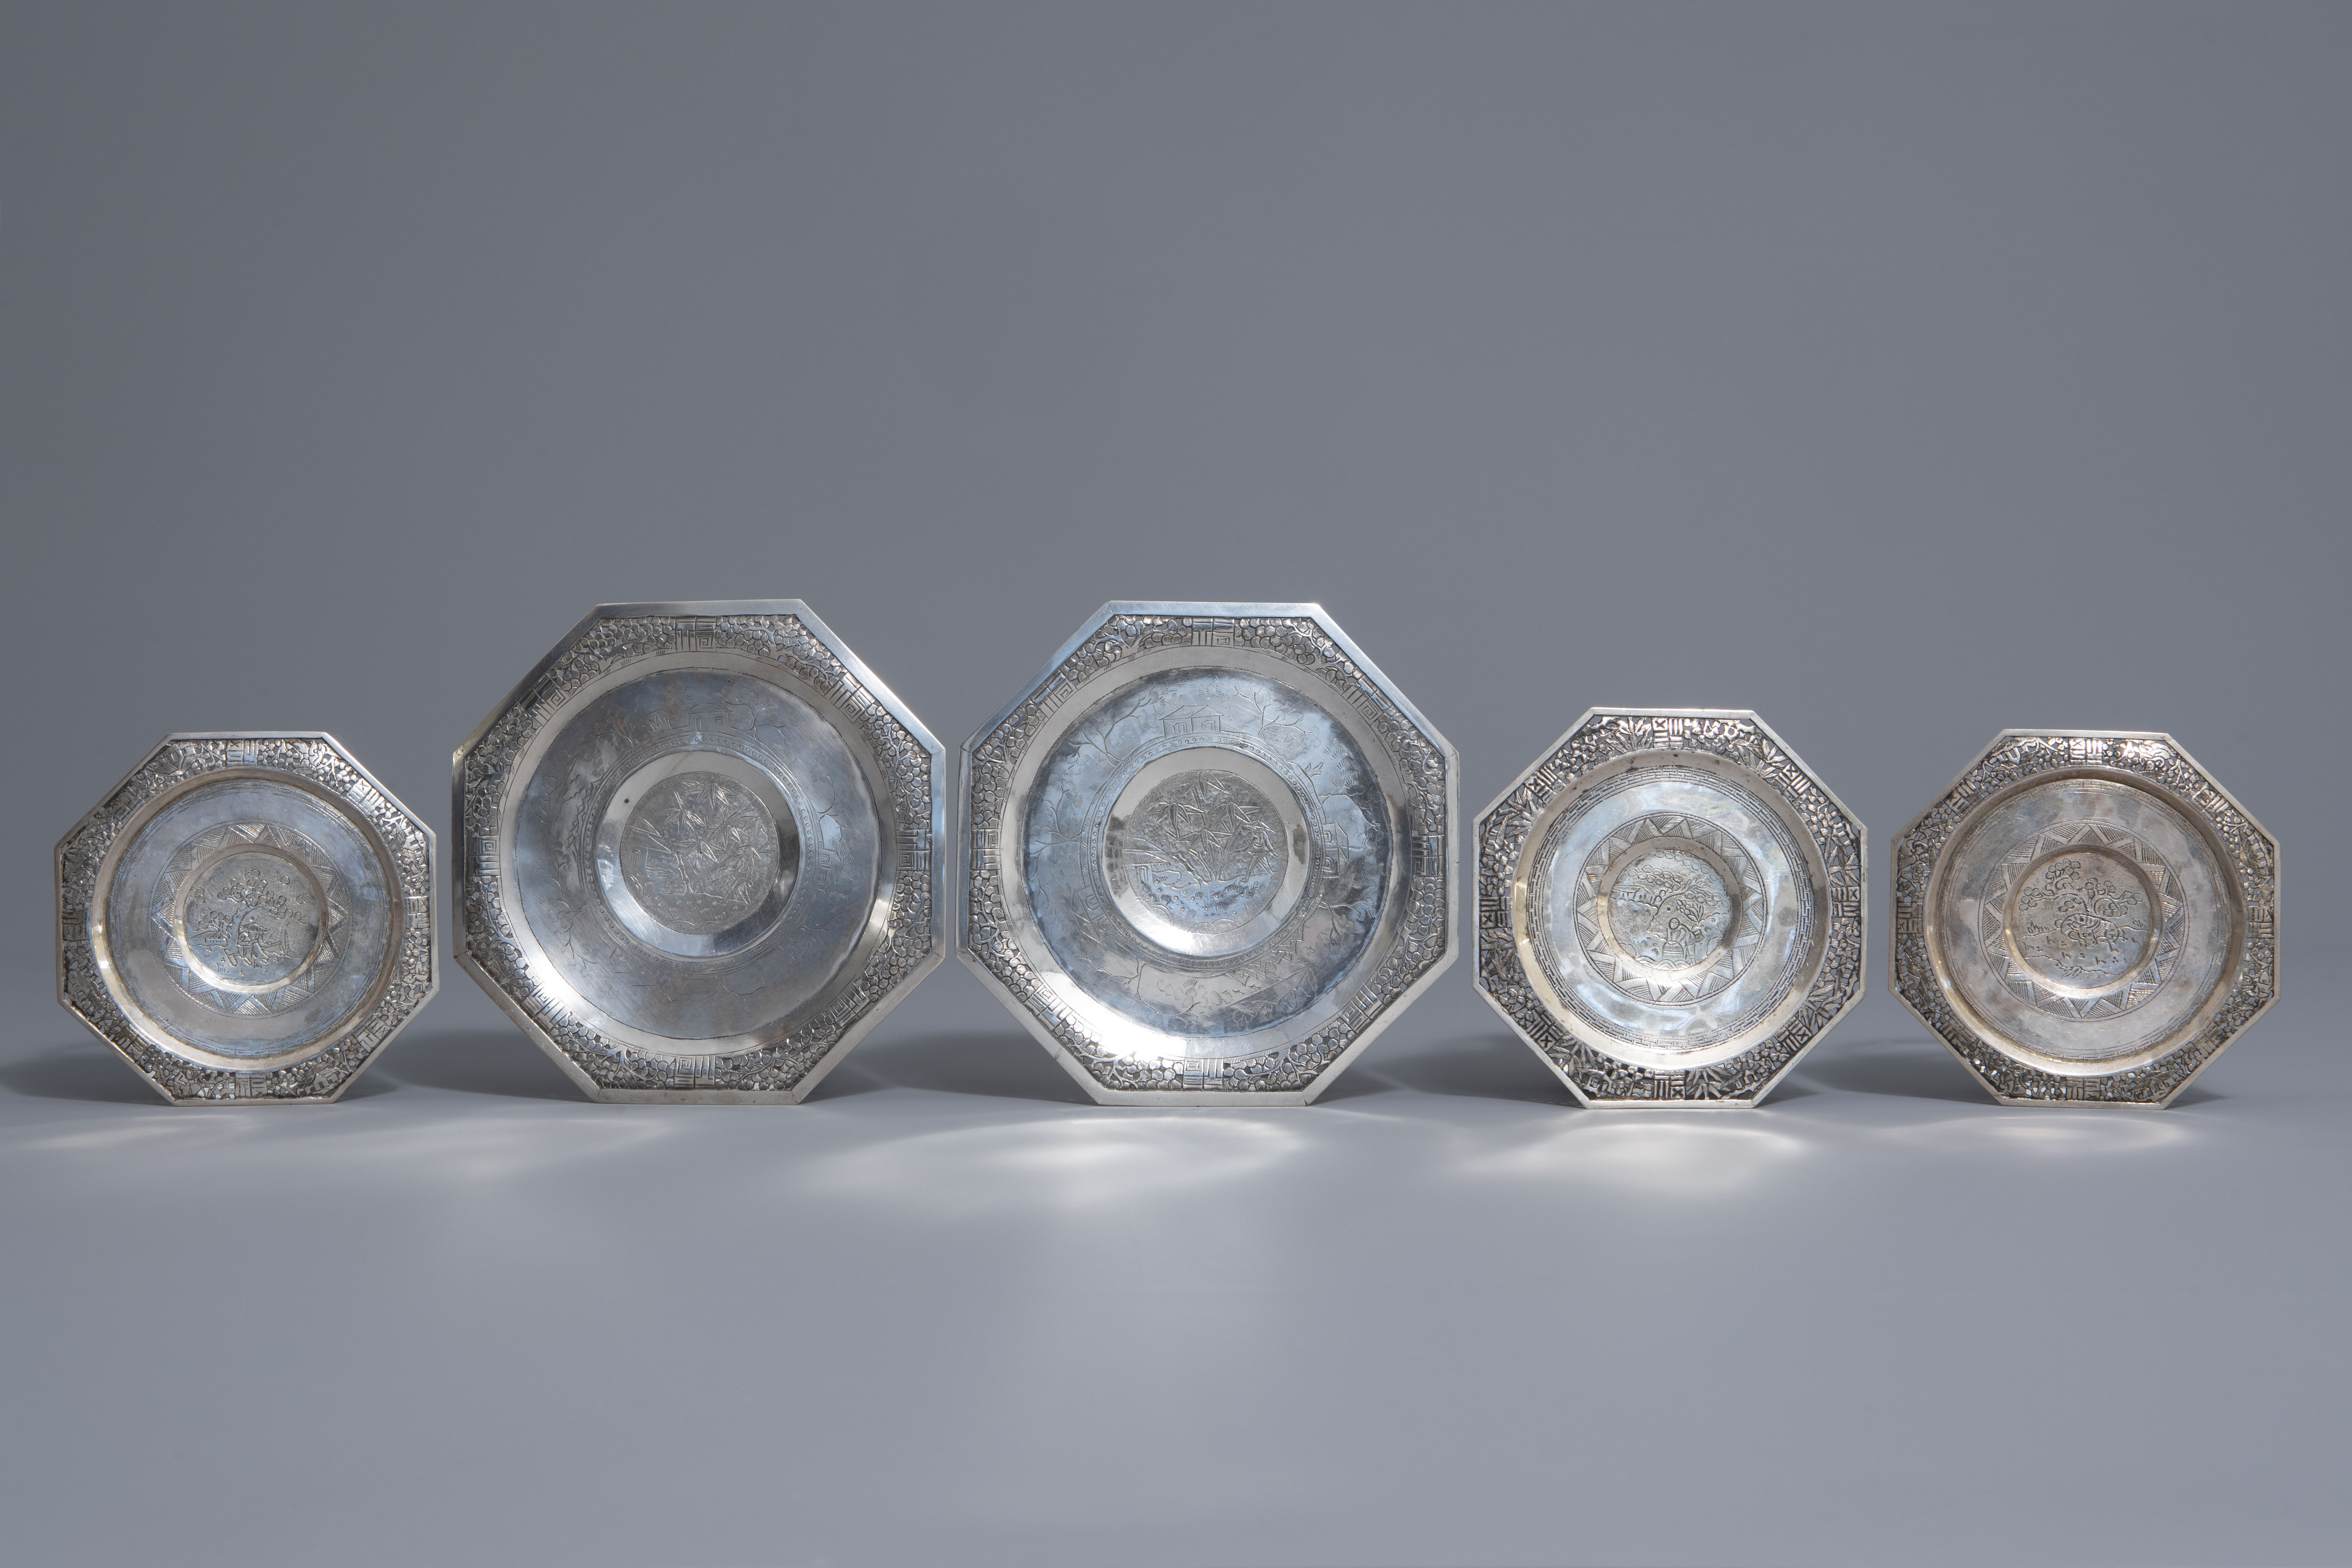 Five Chinese famille rose and silver cups and saucers and a bowl, 19th/20th C. - Image 2 of 17